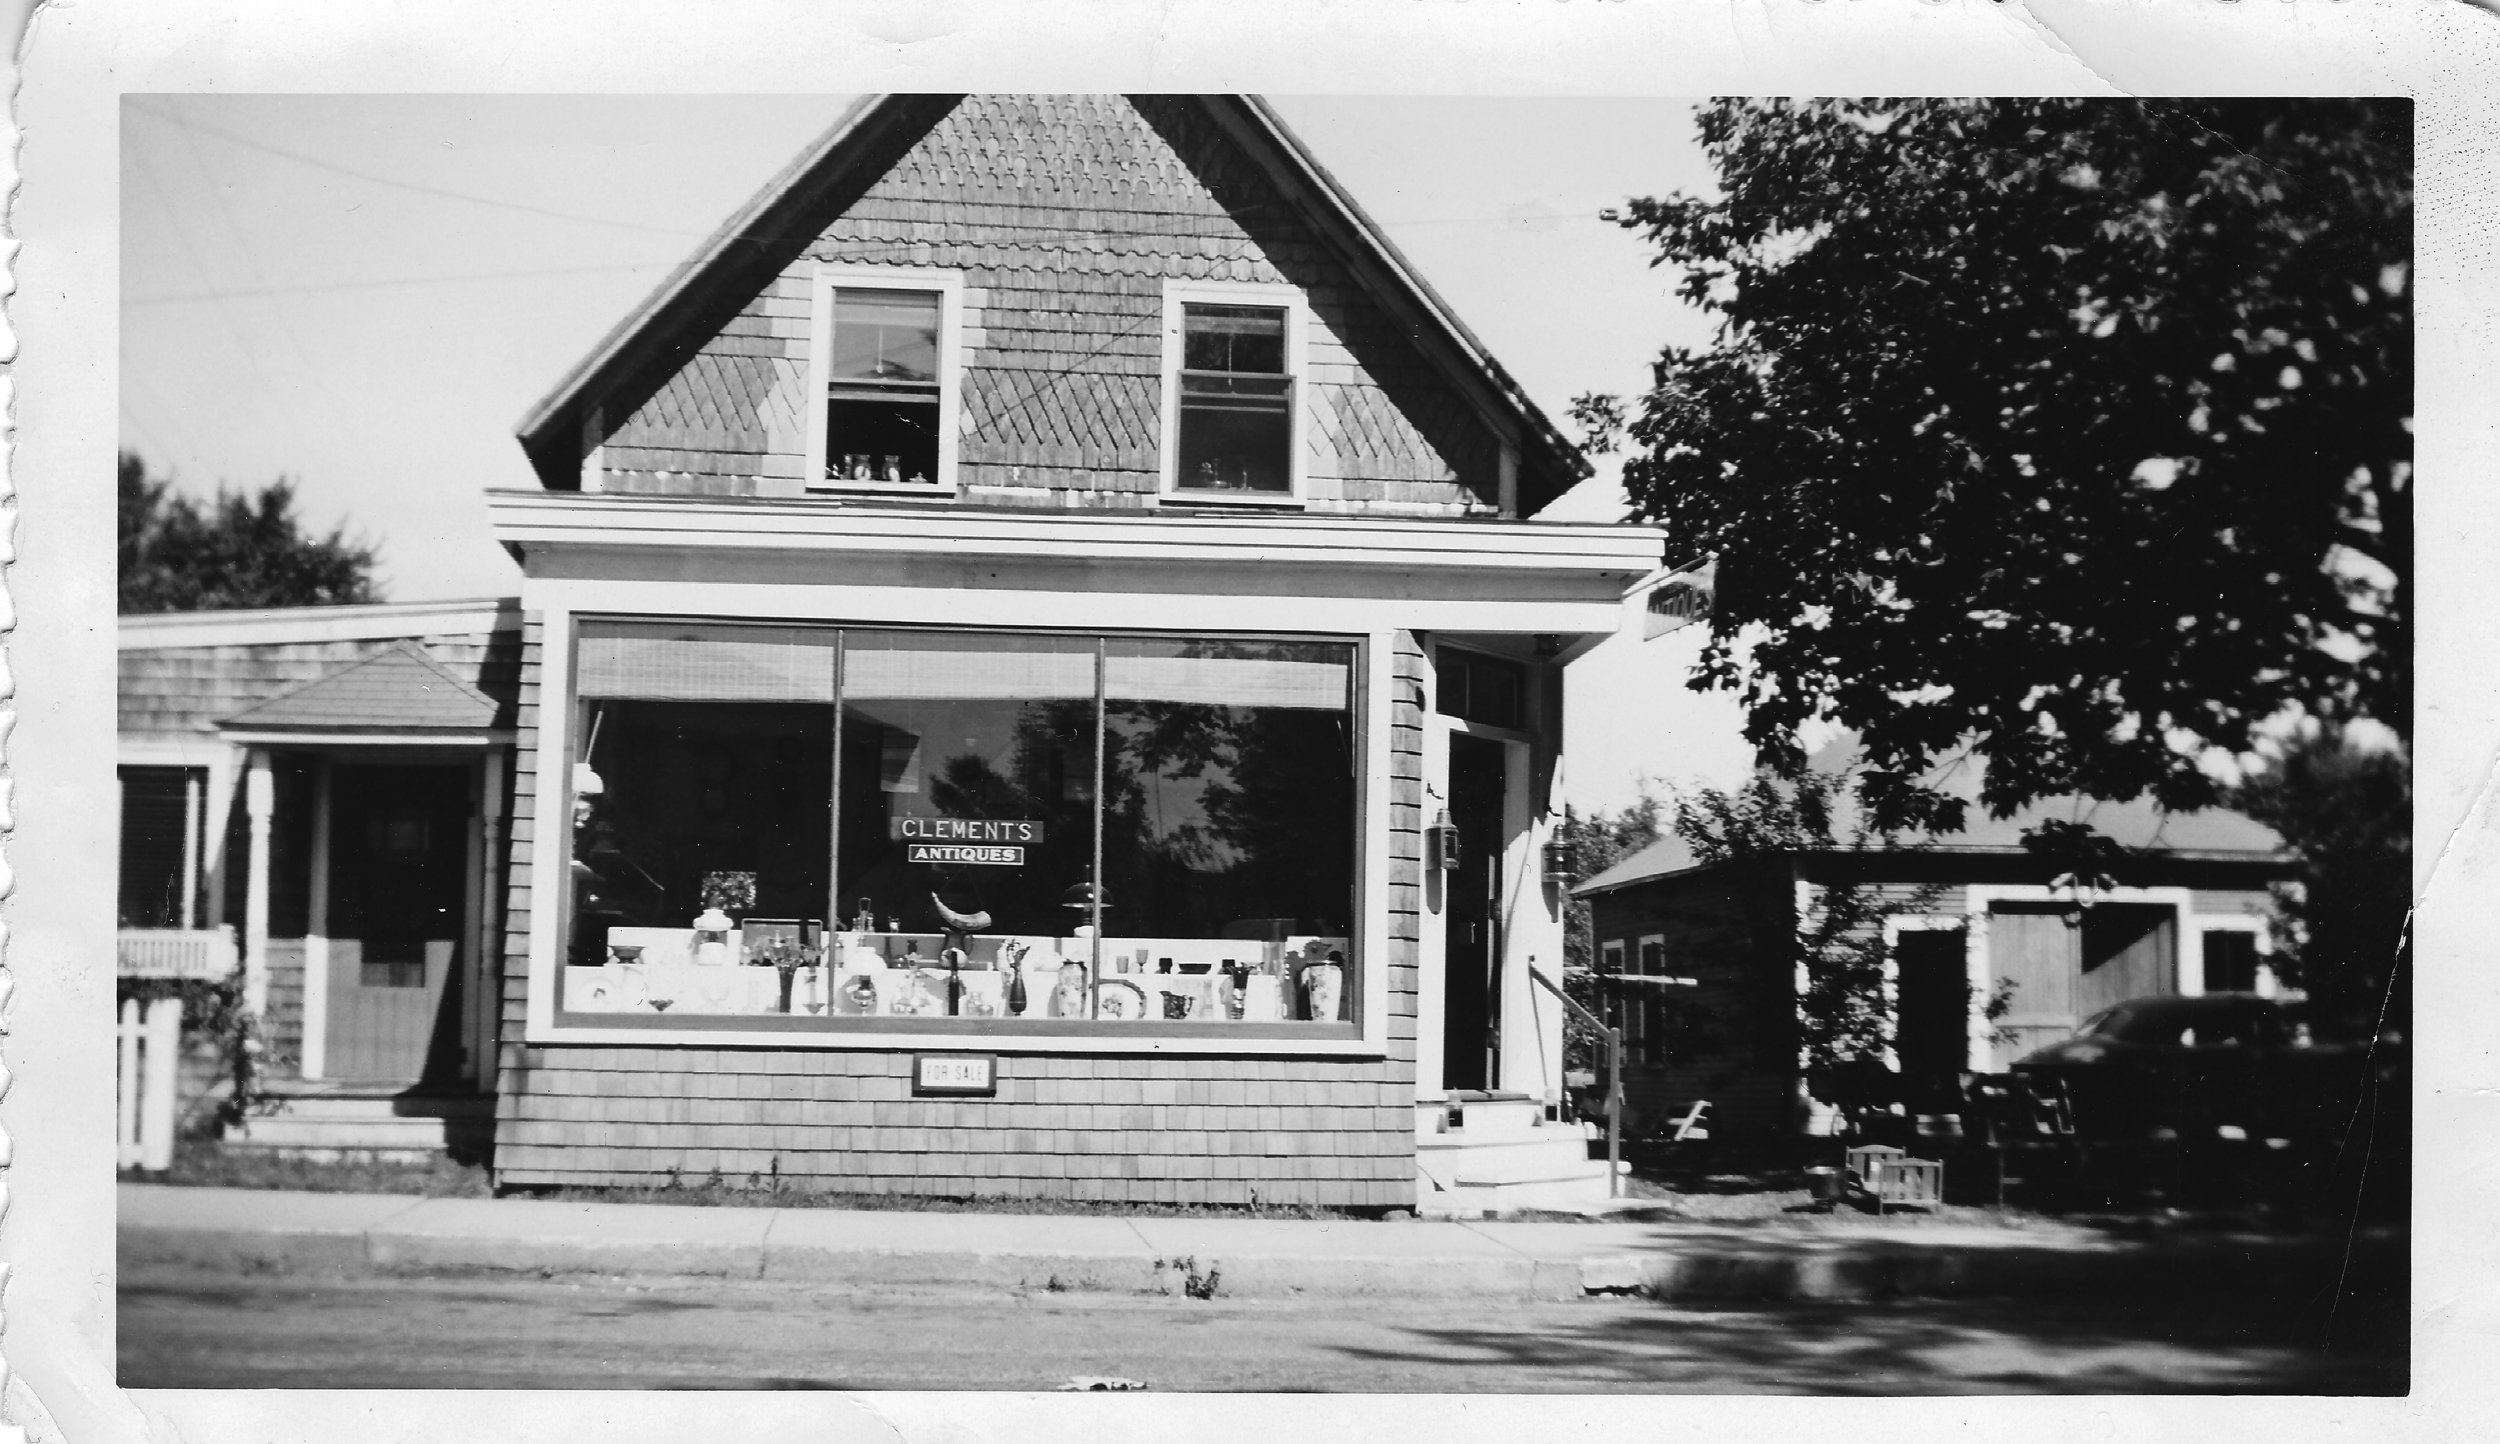 Circa 1930's or 40's. 318 Main Street Bar Harbor was once Clements Antique long before it was Havana.